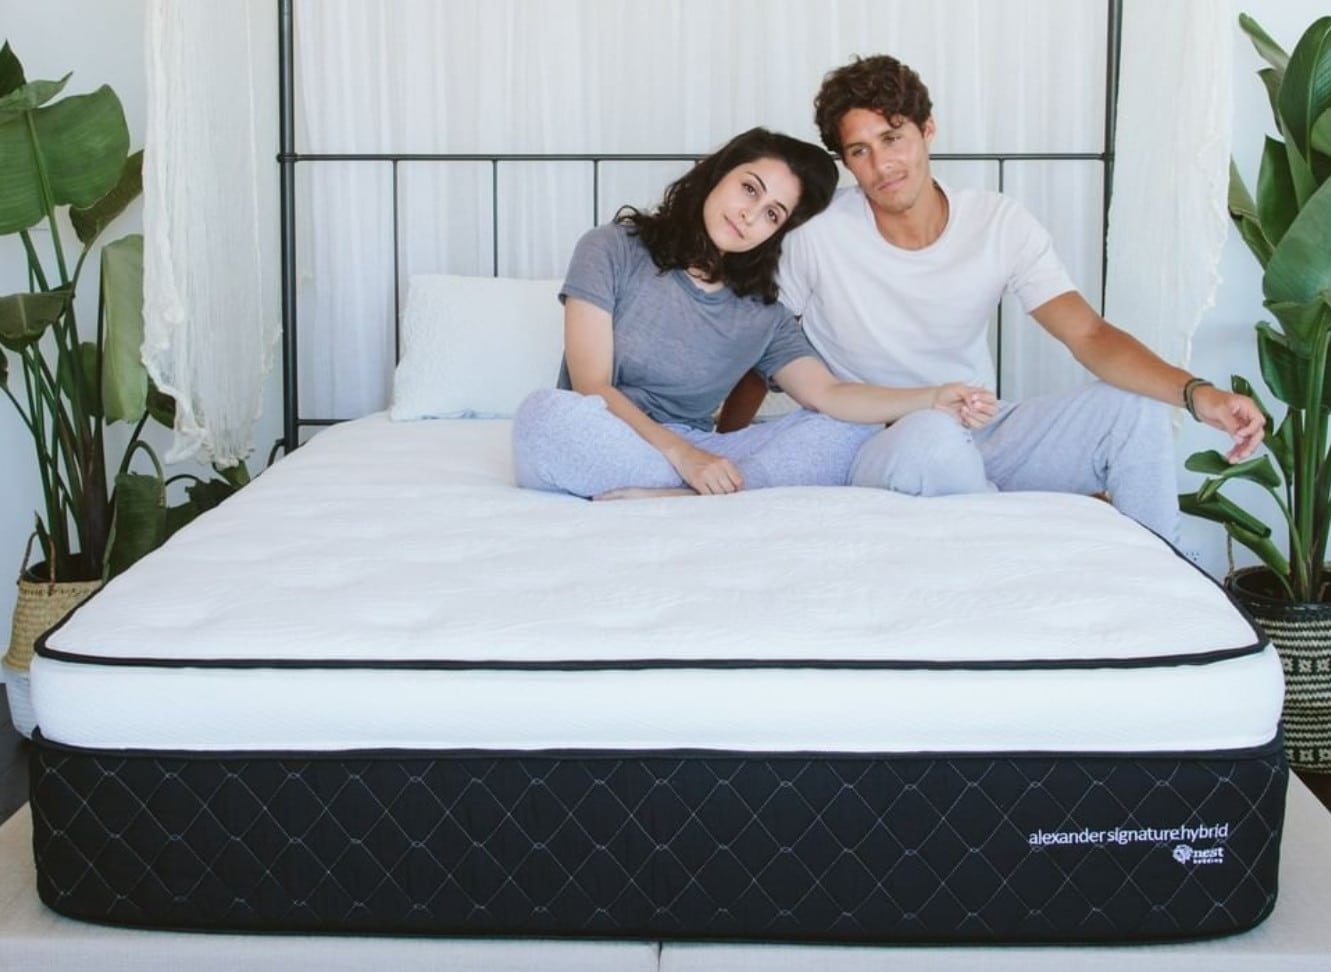 nest bedding signature hybrid mattress review